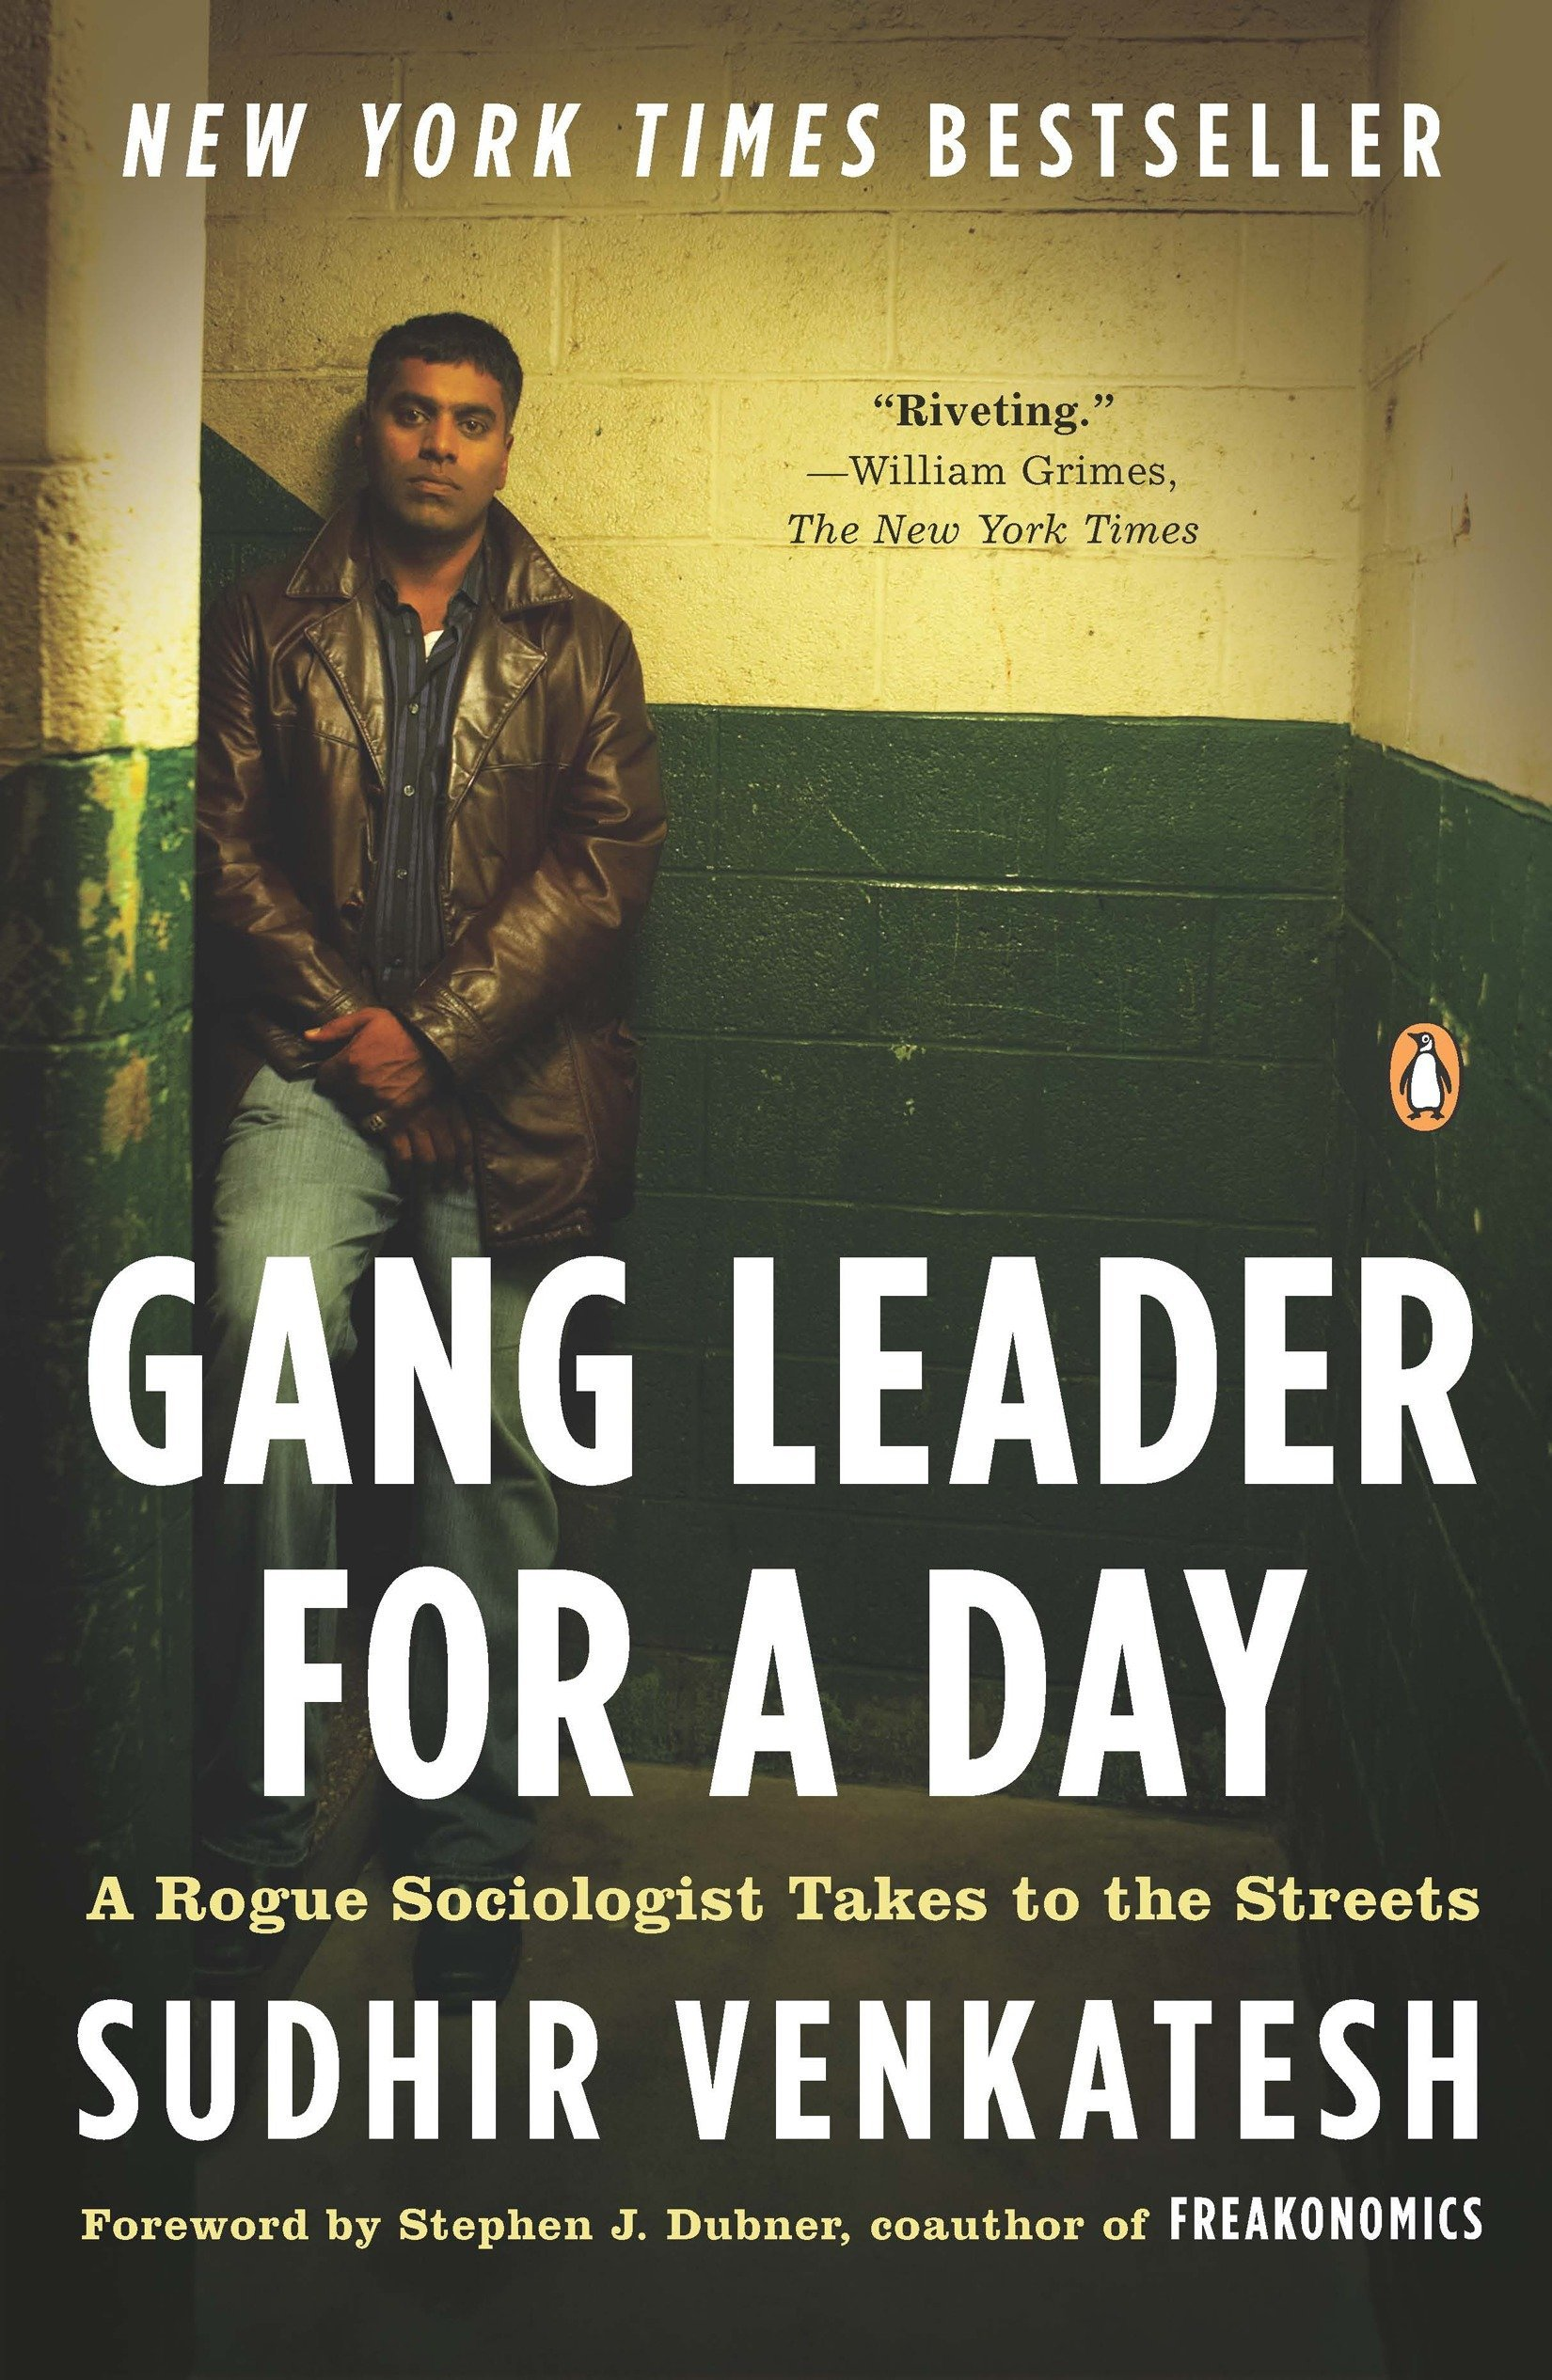 Gang Leader for a Day: A Rogue Sociologist Takes to the Streets by Penguin Books